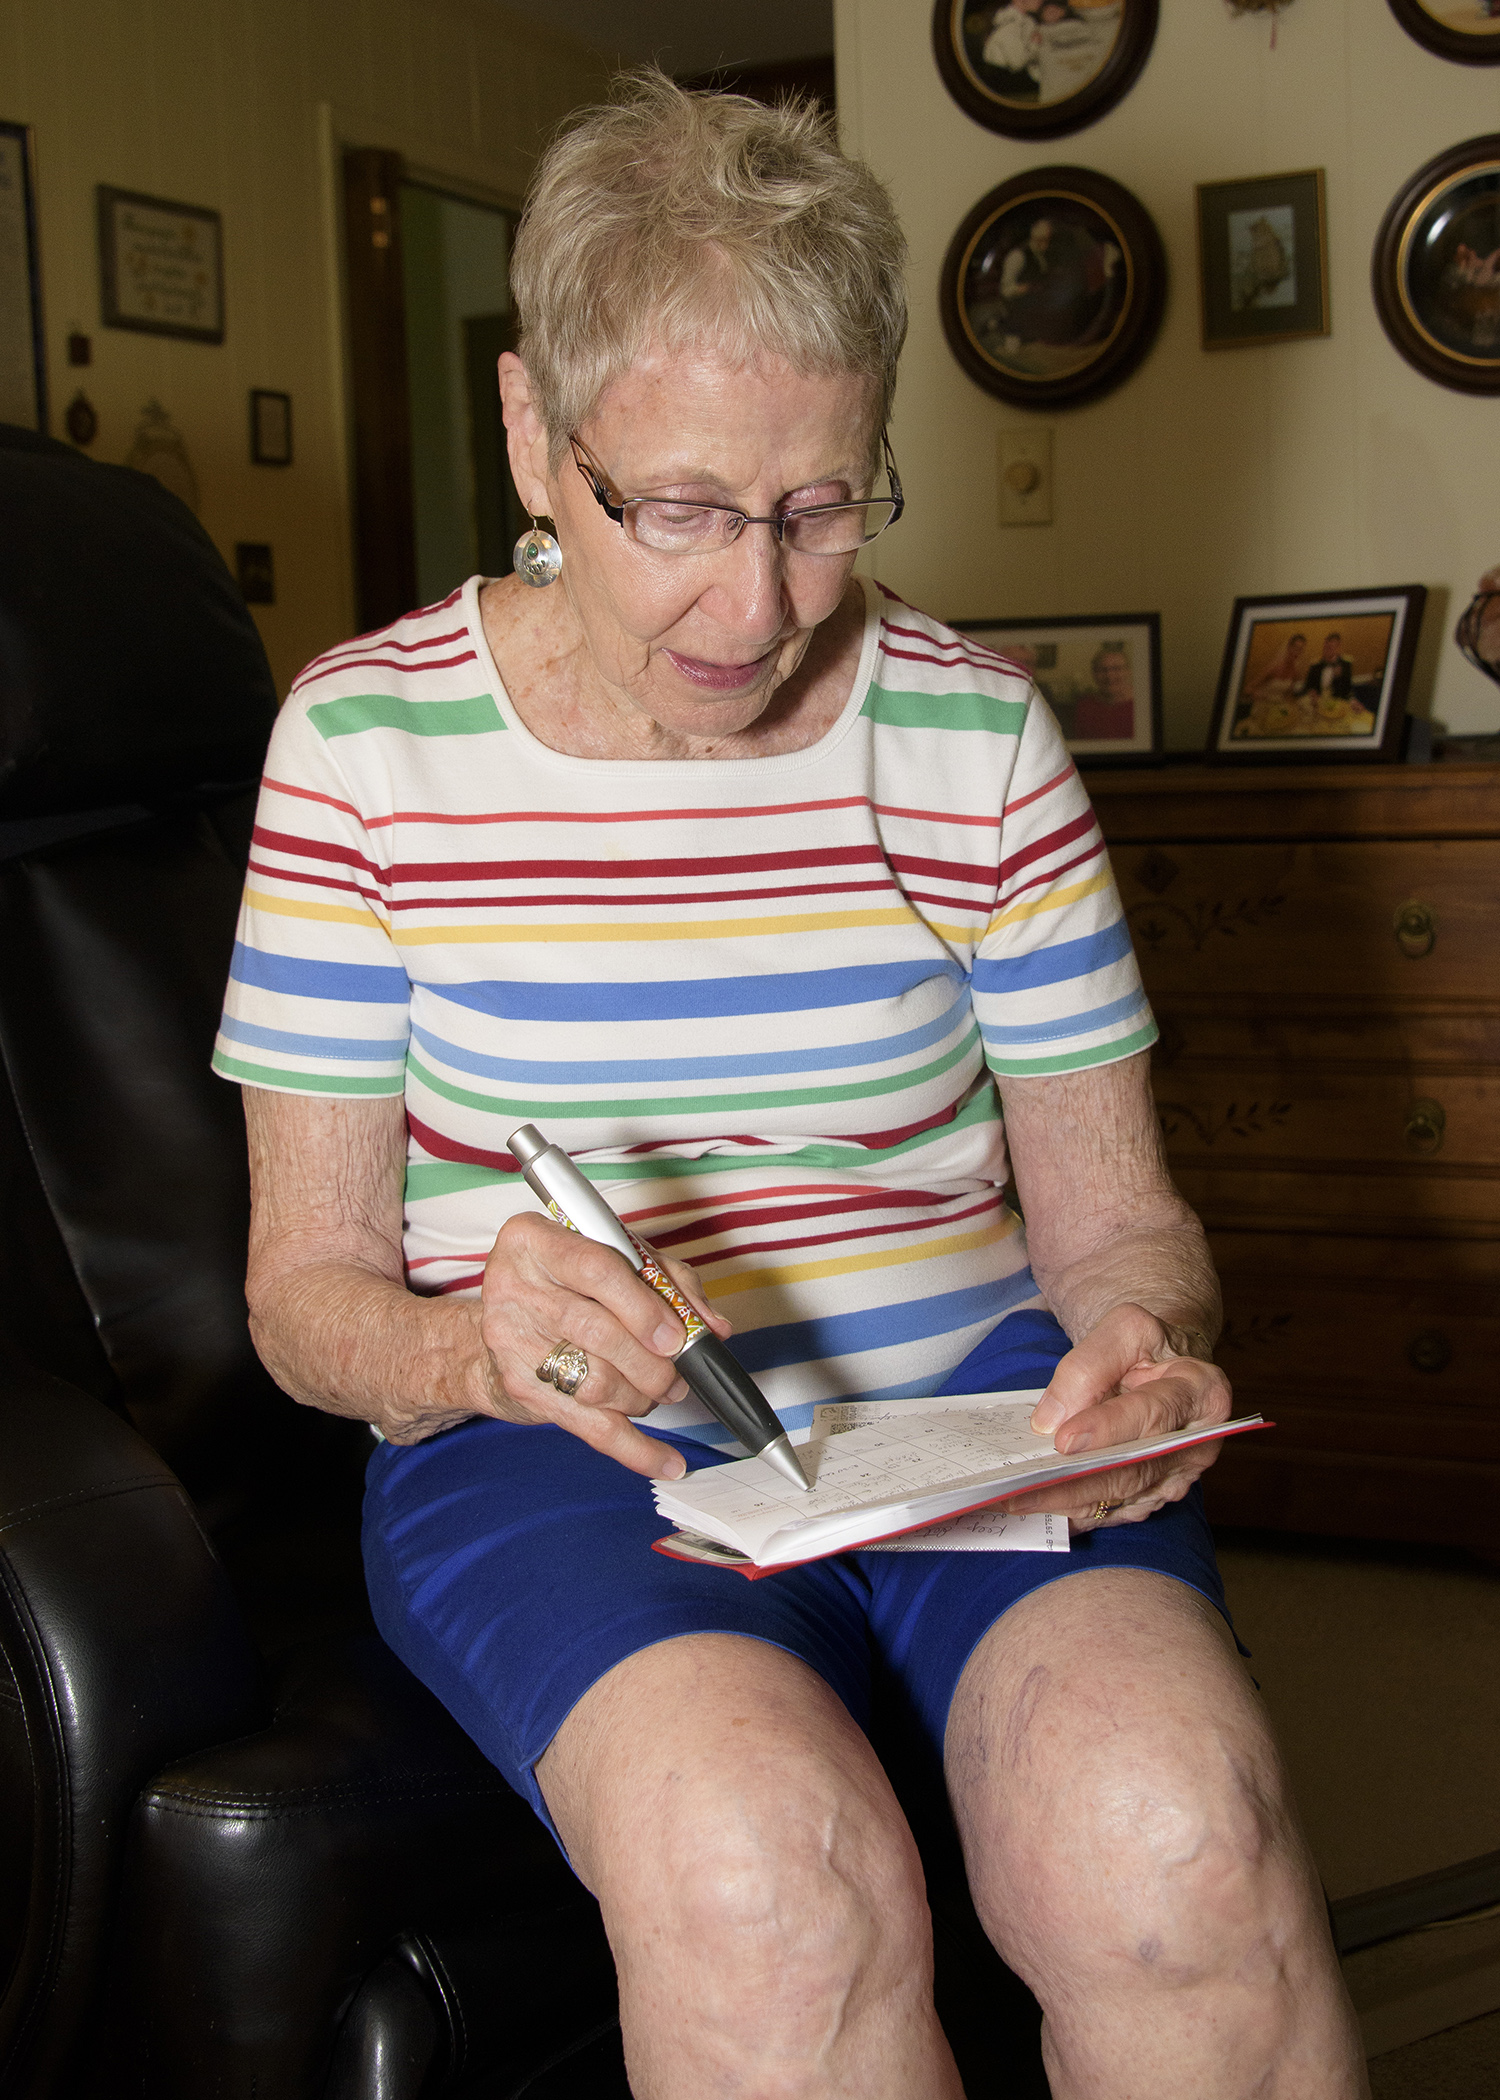 A gray-haired woman in blue shorts and a multi-colored striped shirt holds a pen over a pocket calendar to check appointments.